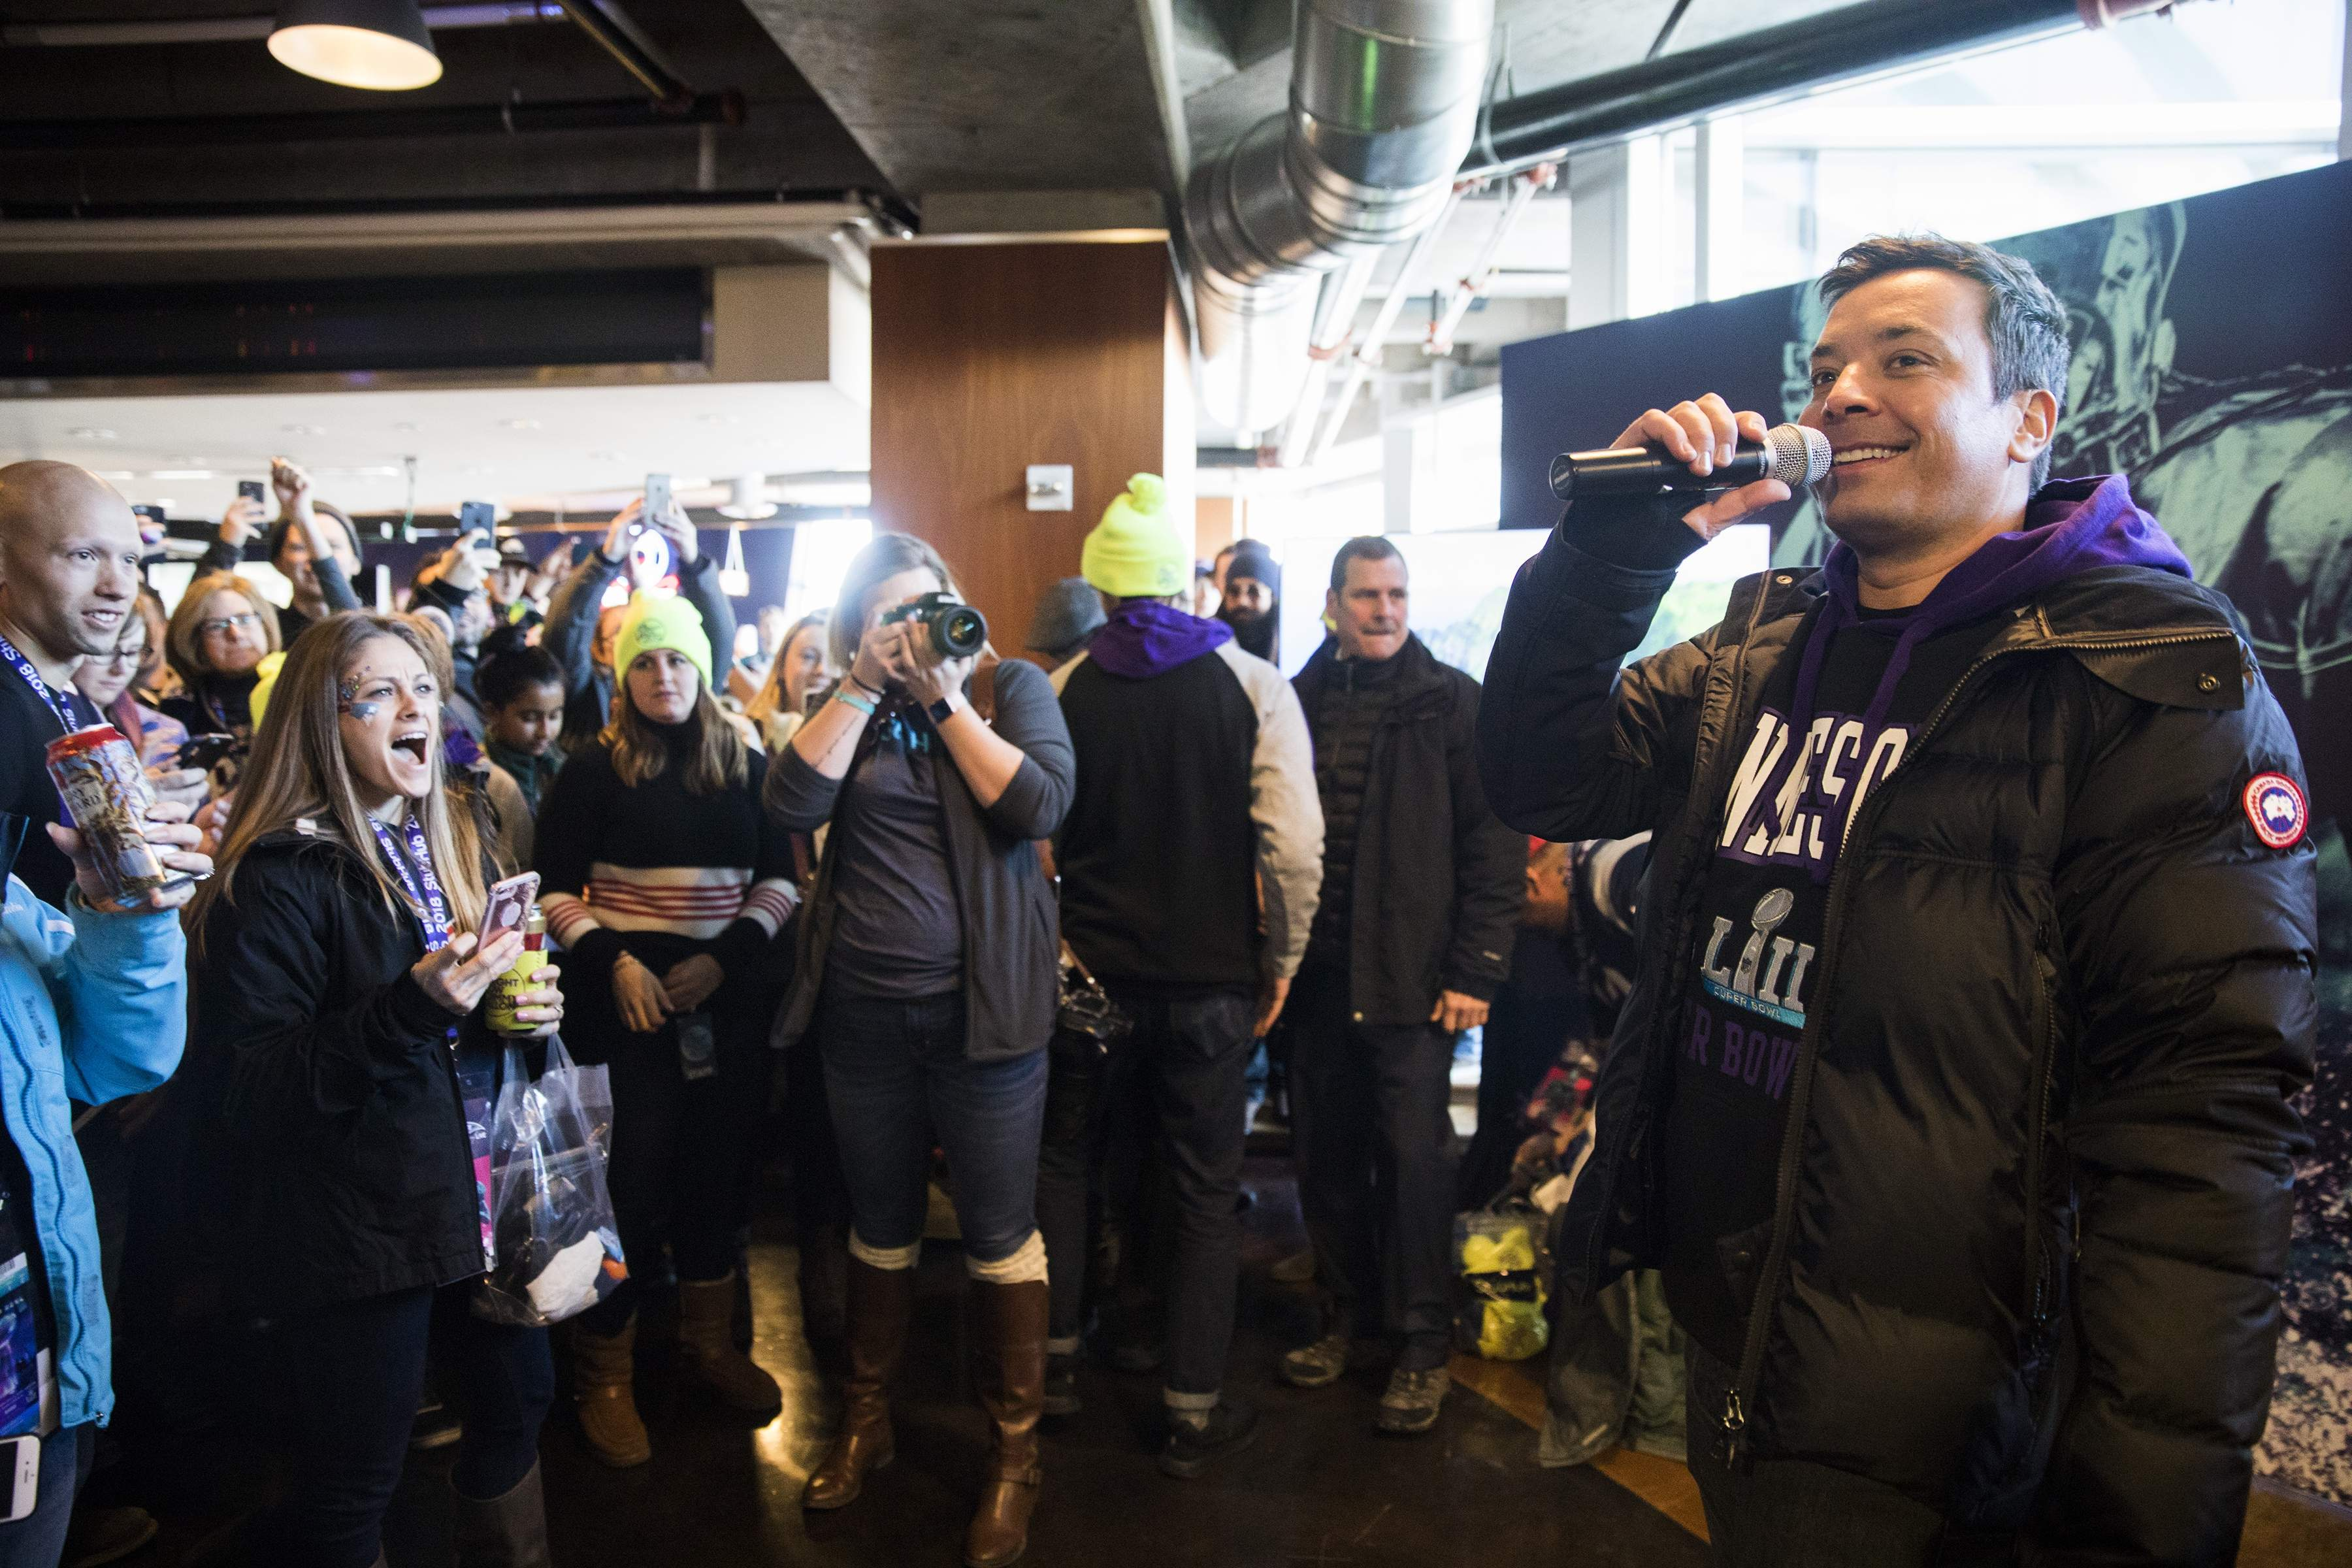 Jimmy Fallon appears with fans as he does some taping for 'The Tonight Show with Jimmy Fallon,' at The StubHub Live: Field House Super Bowl pregame event at Target Field, Sunday, Feb. 4, 2018 in Minneapolis. The event, free for those who purchased tickets to the Super Bowl on StubHub, included food and drink, tailgating games and meet and greets with football greats. (Leila Navidi/Star Tribune via AP)